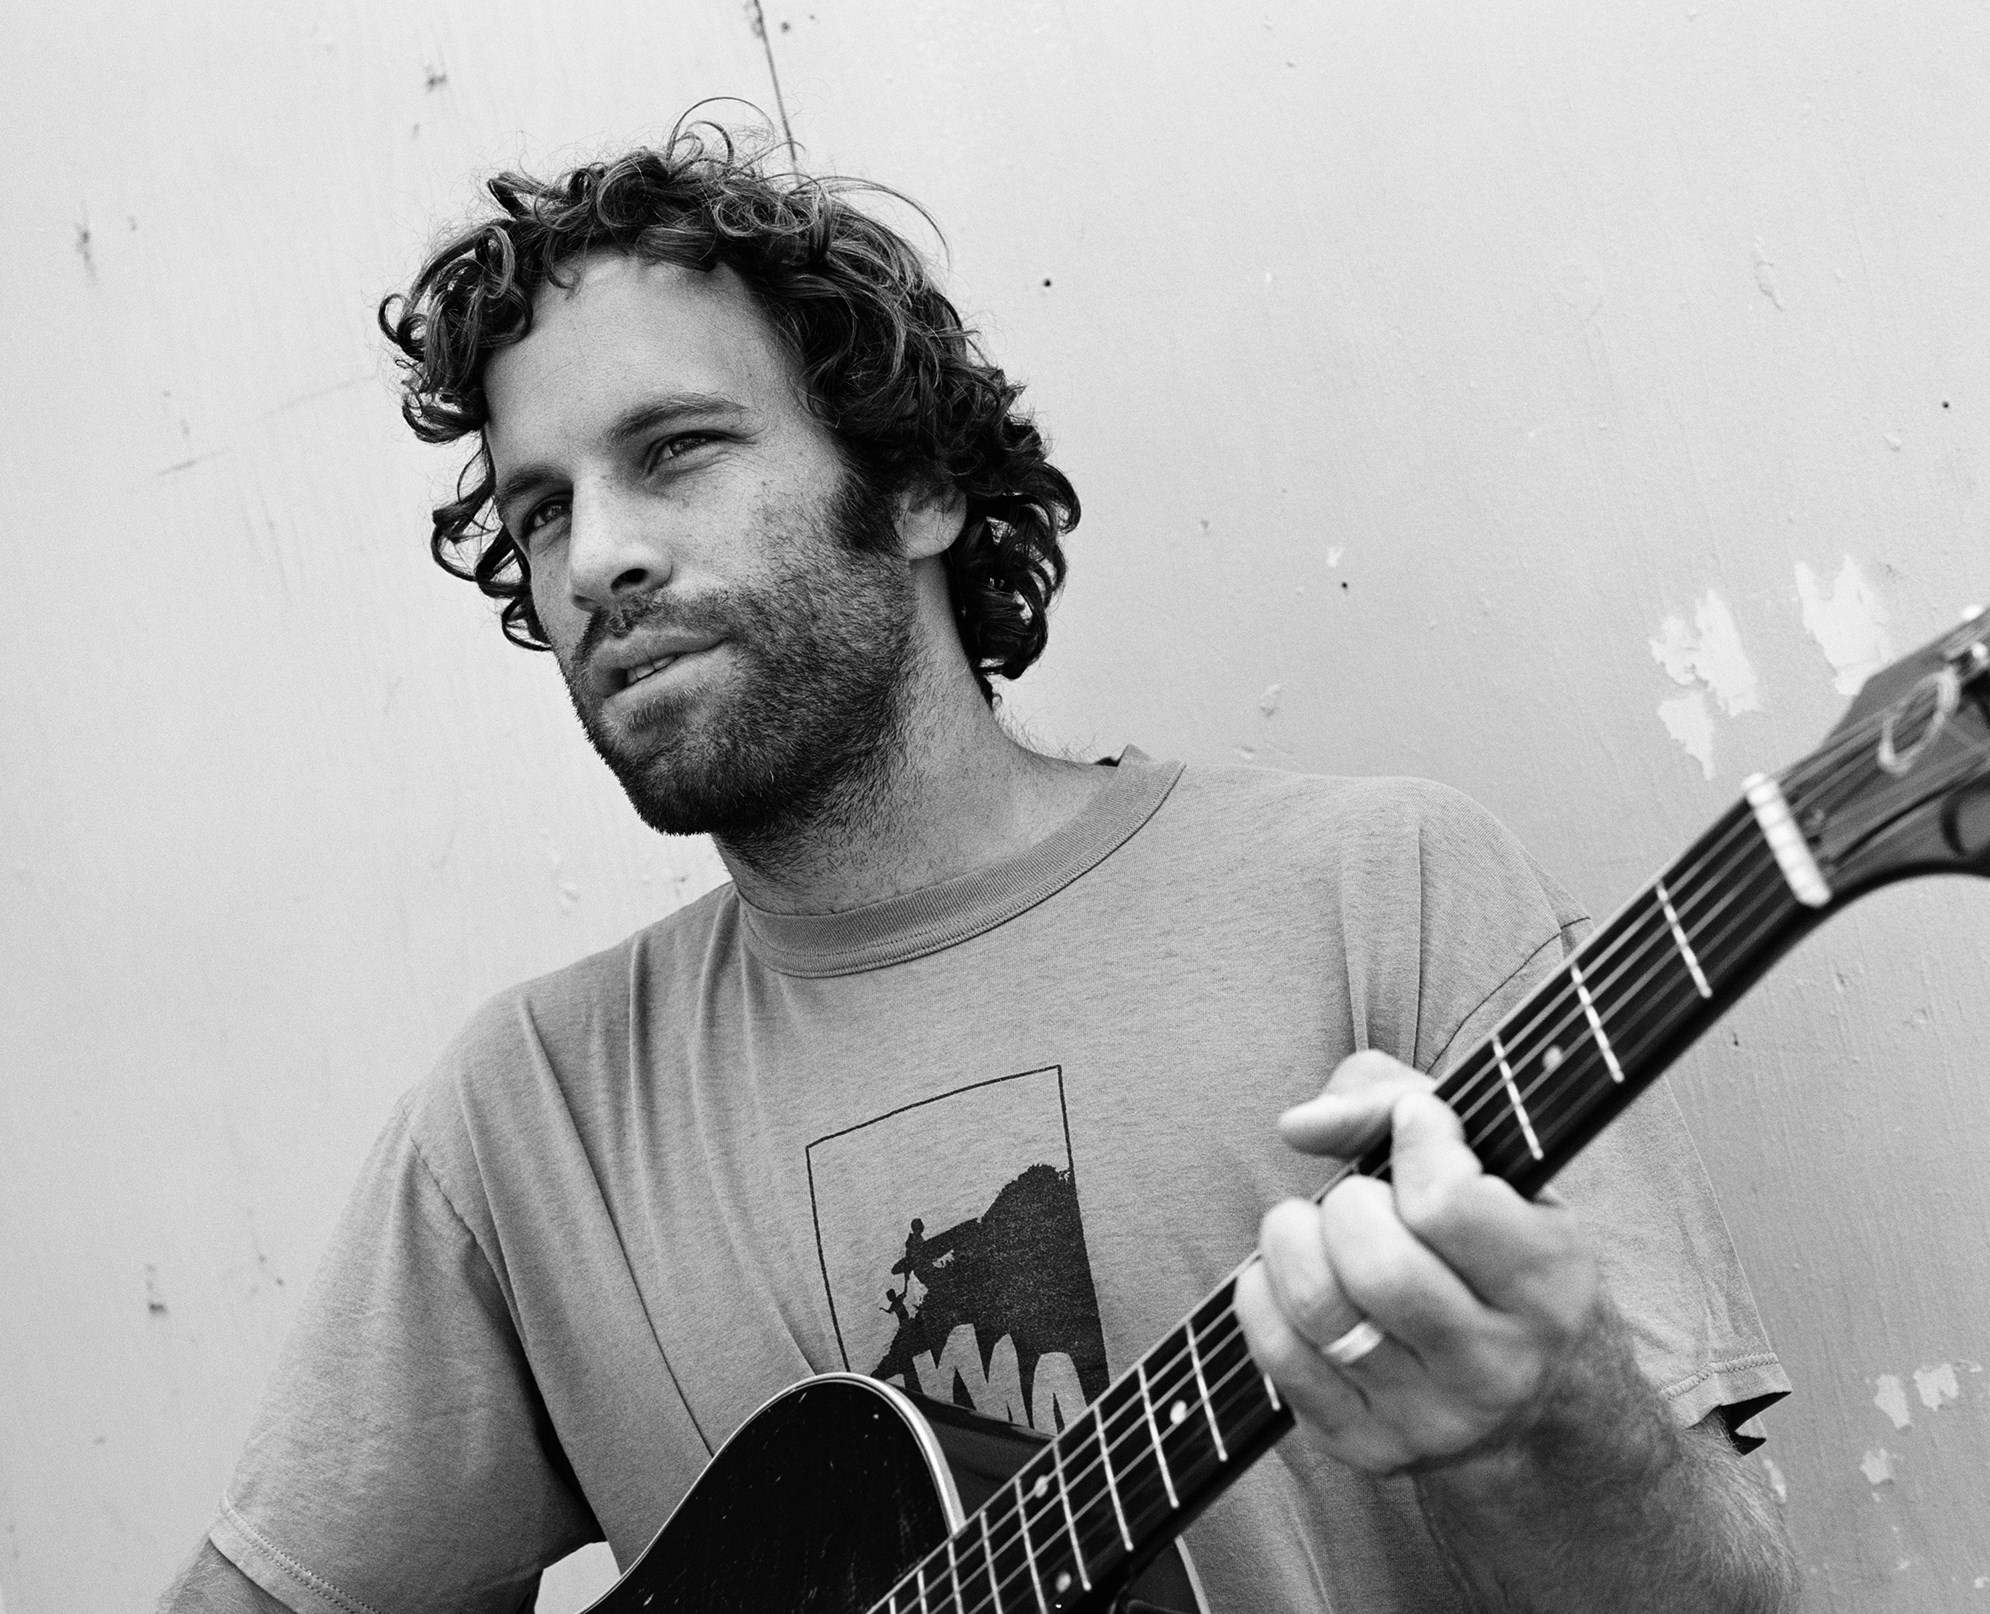 jack johnson This is: jack johnson by spotify your essential jack johnson, all in one playlist 69 songs play on spotify 1 my mind is for salejack johnson • all the light above it too 3:590:30 2 better togetherjack johnson • in between dreams 3: 270:30 3 sunsets for somebody elsejack johnson • all the light above it too.